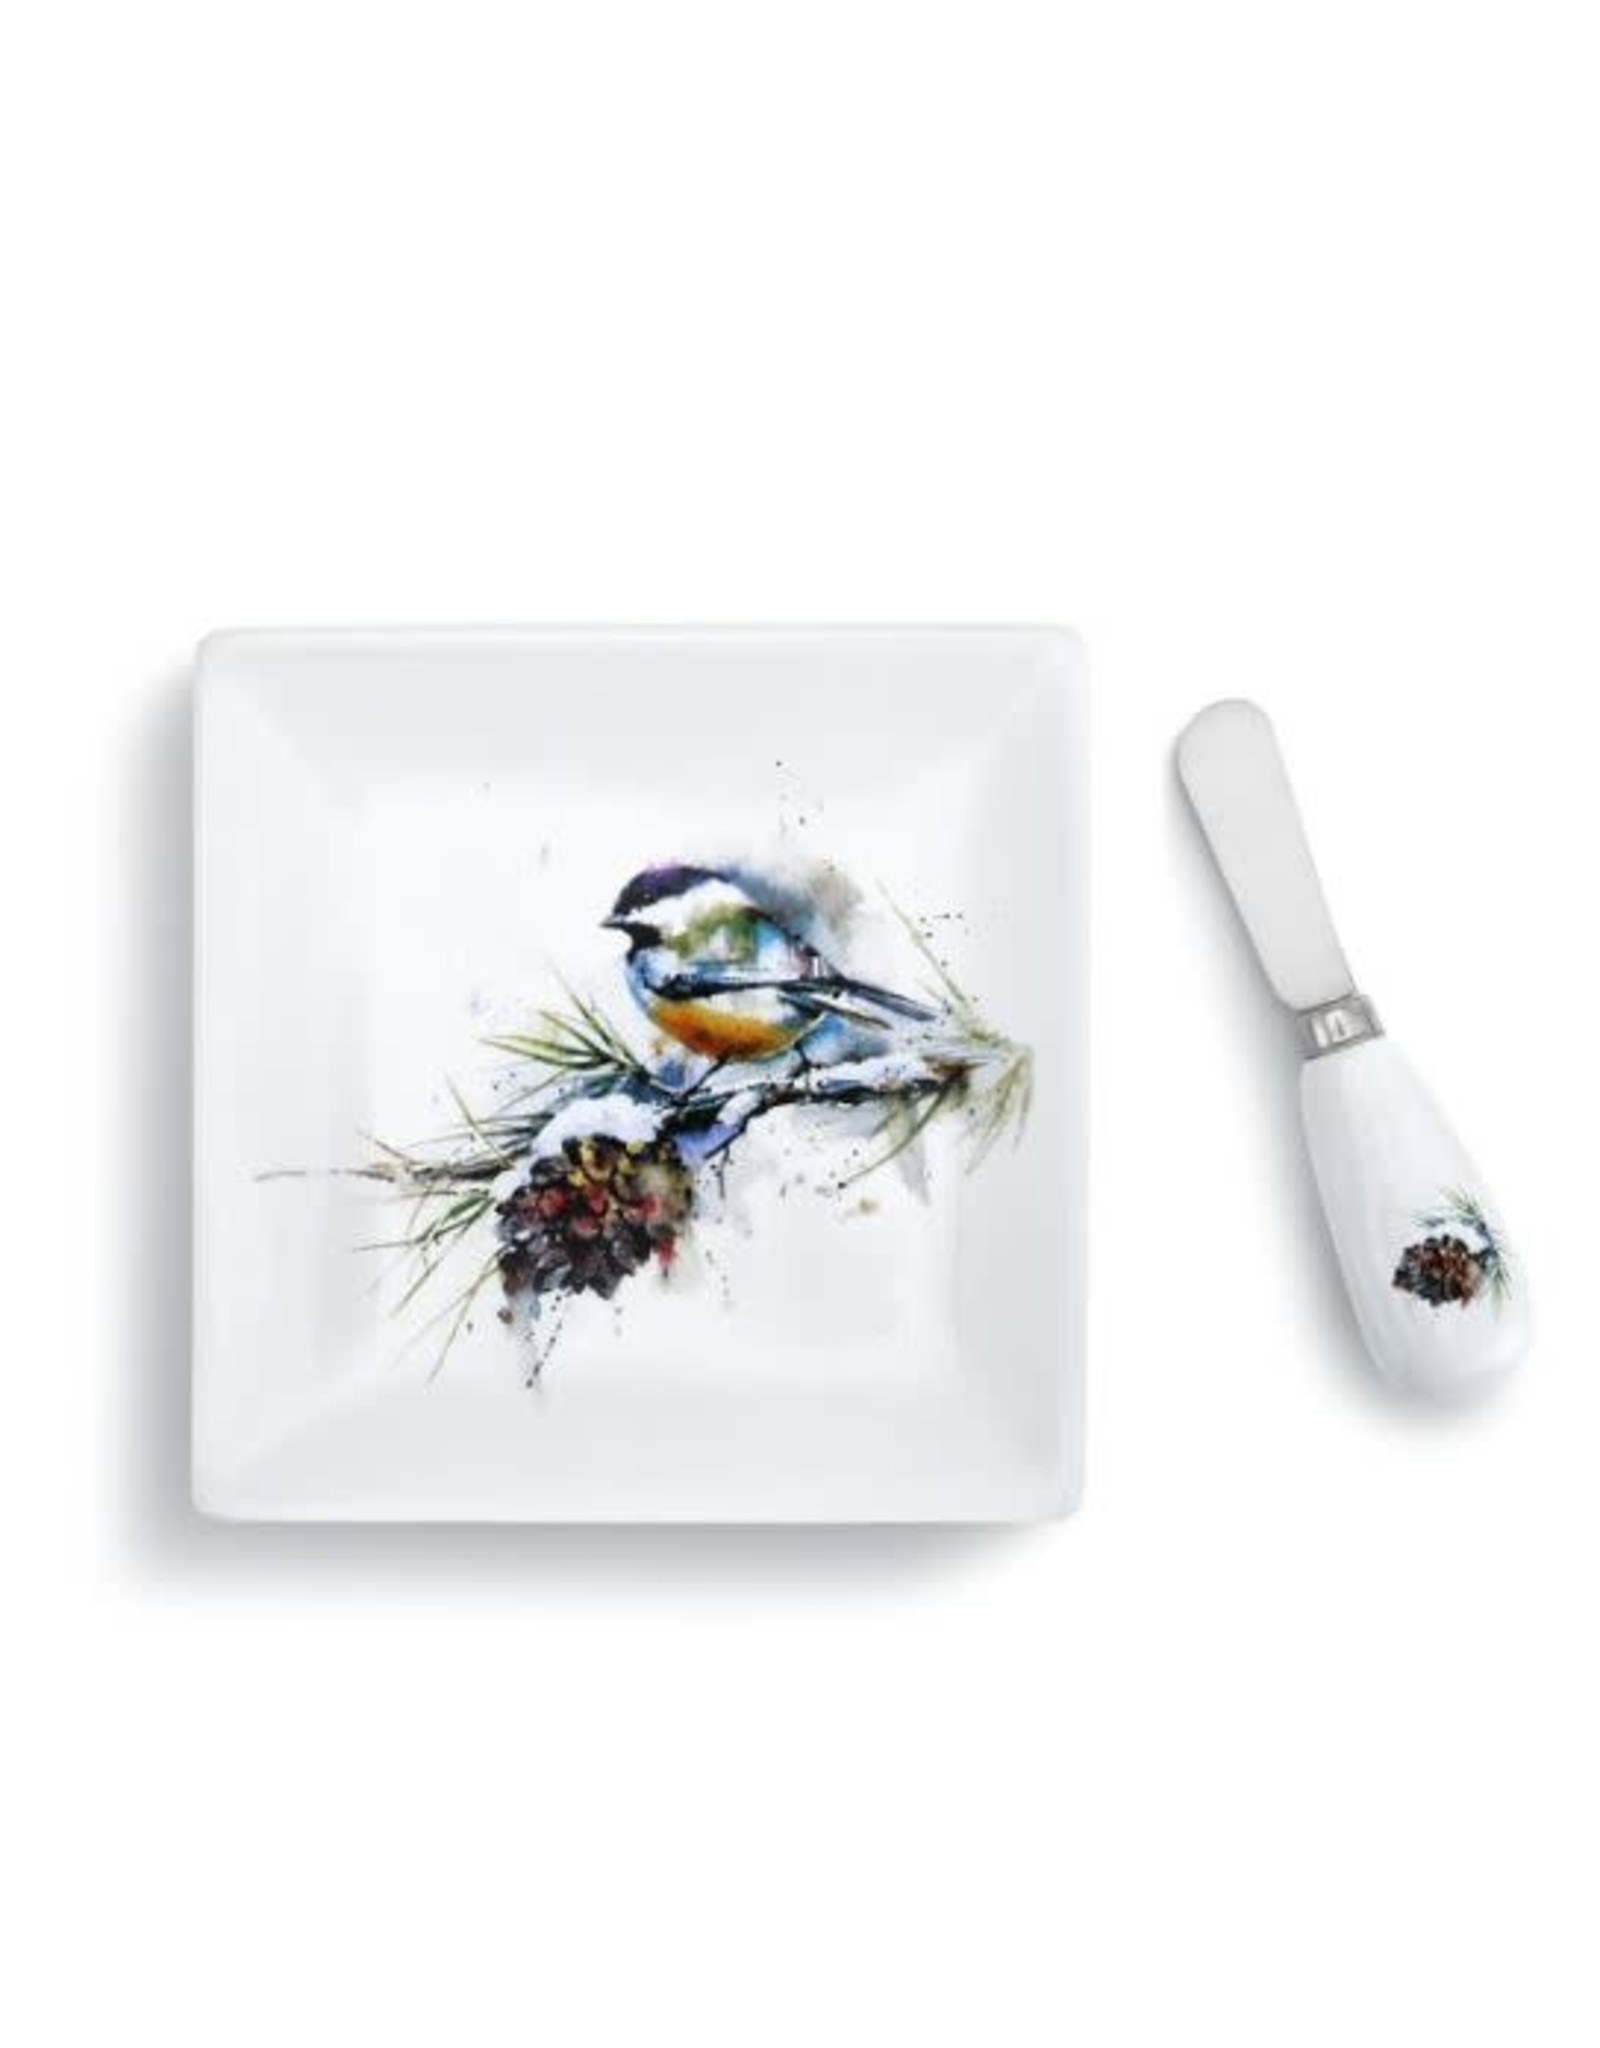 Demdaco CHICKADEE PINECONE PLATE AND SPREADER SET